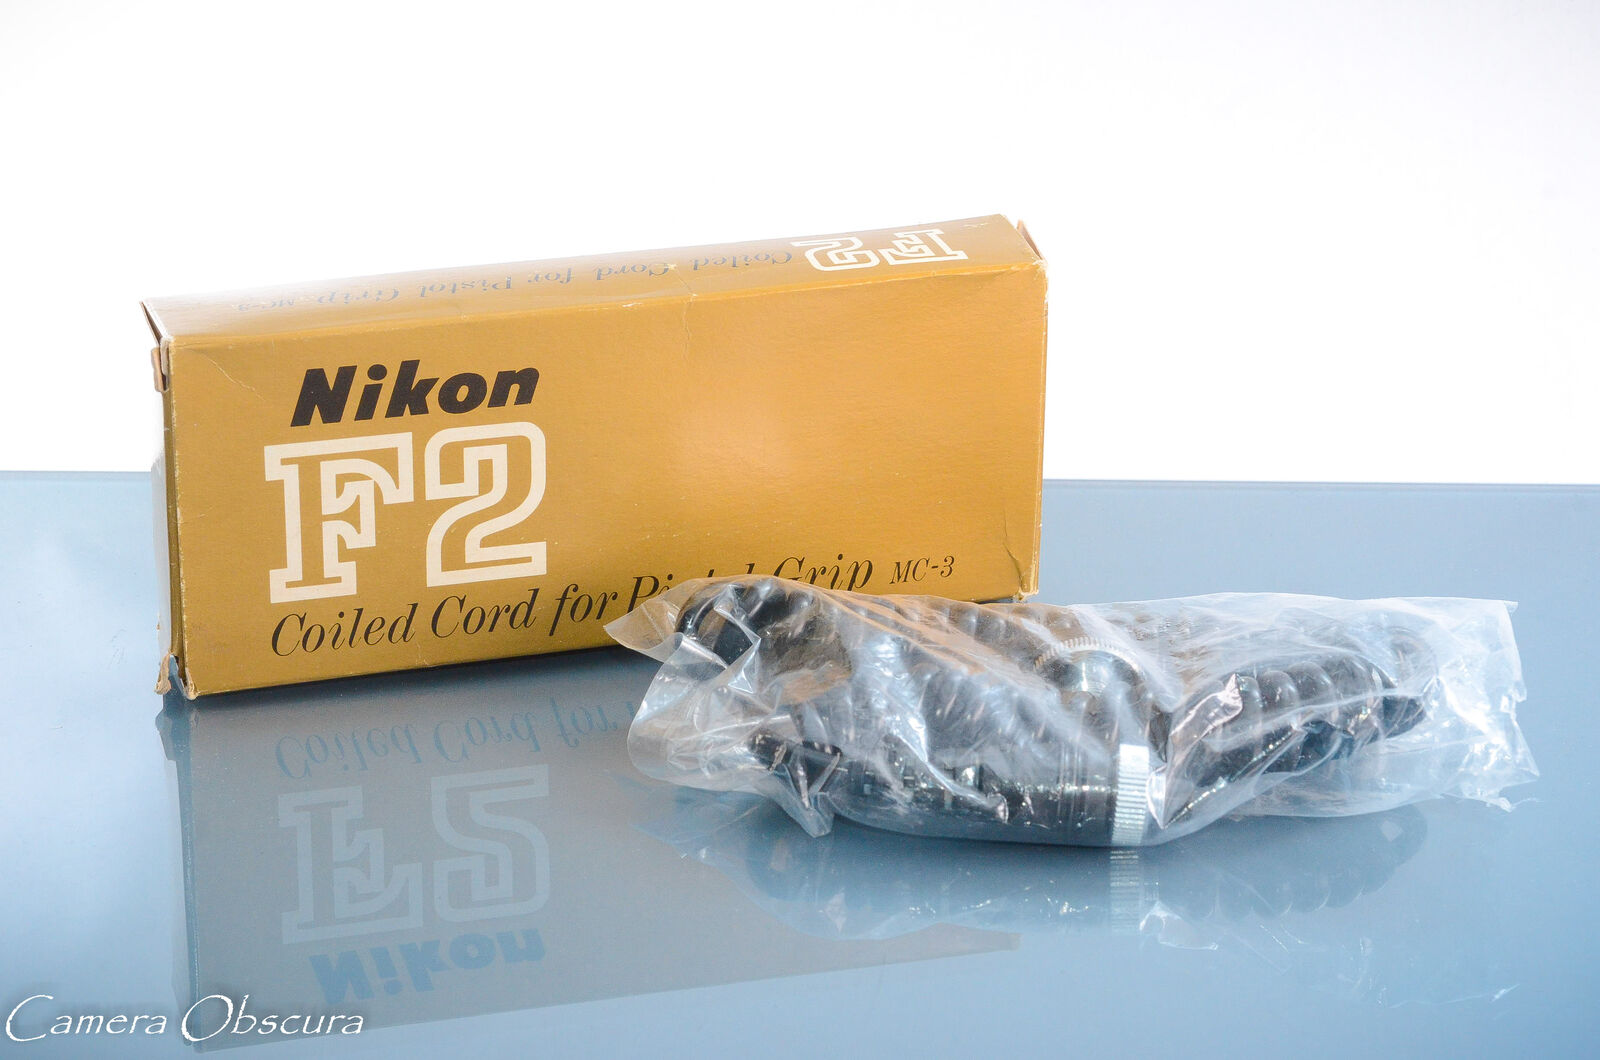 Nikon MC-3 Coiled Cord for Pistol Grip 2 and MD-1/MD-2 Motor Drive